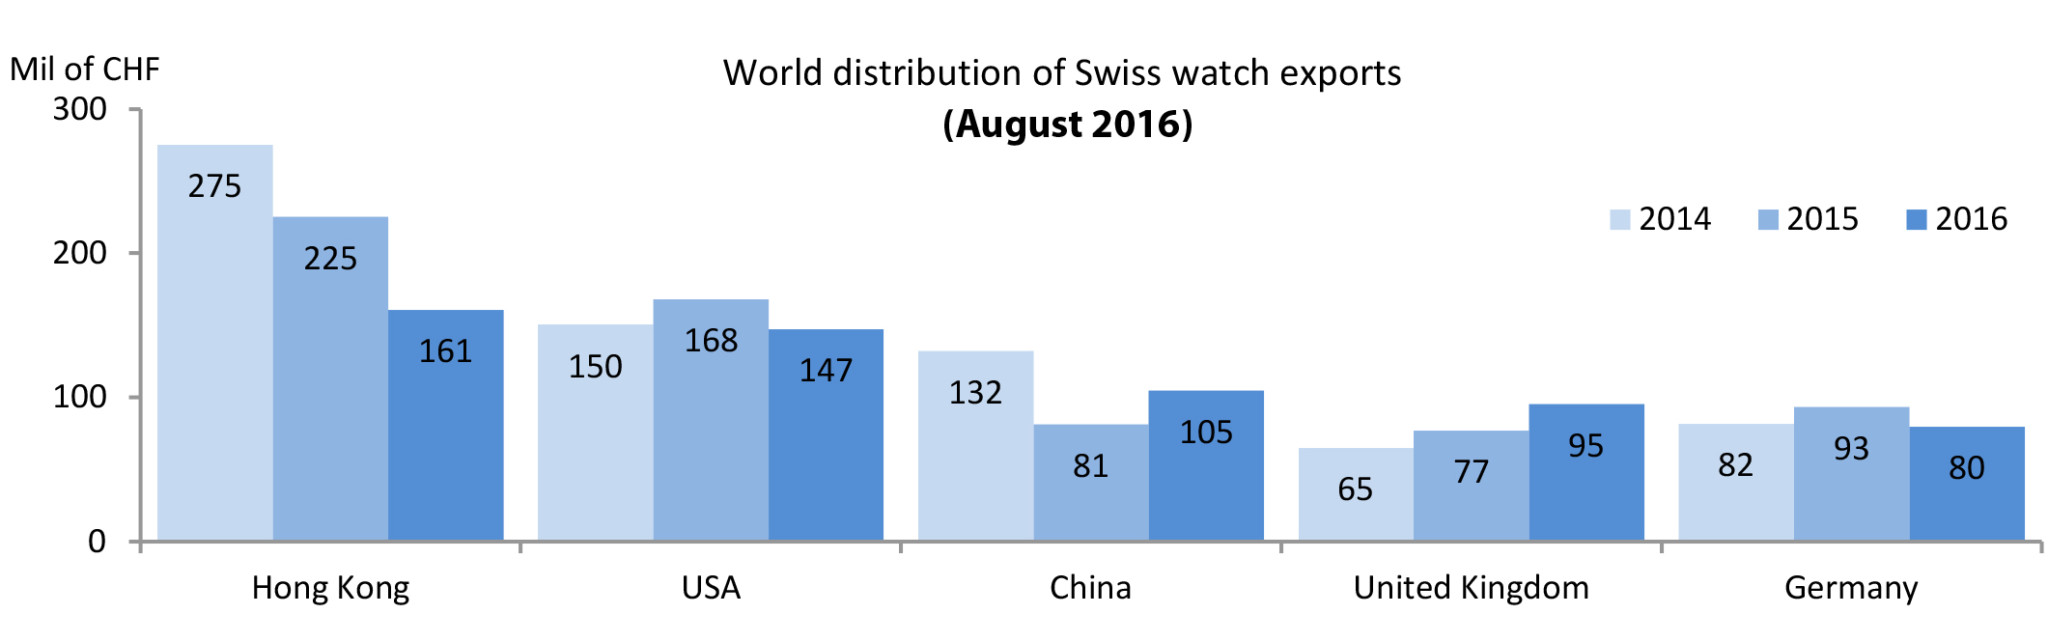 World Distribution of Swiss Watch Exports (Aug 2016)